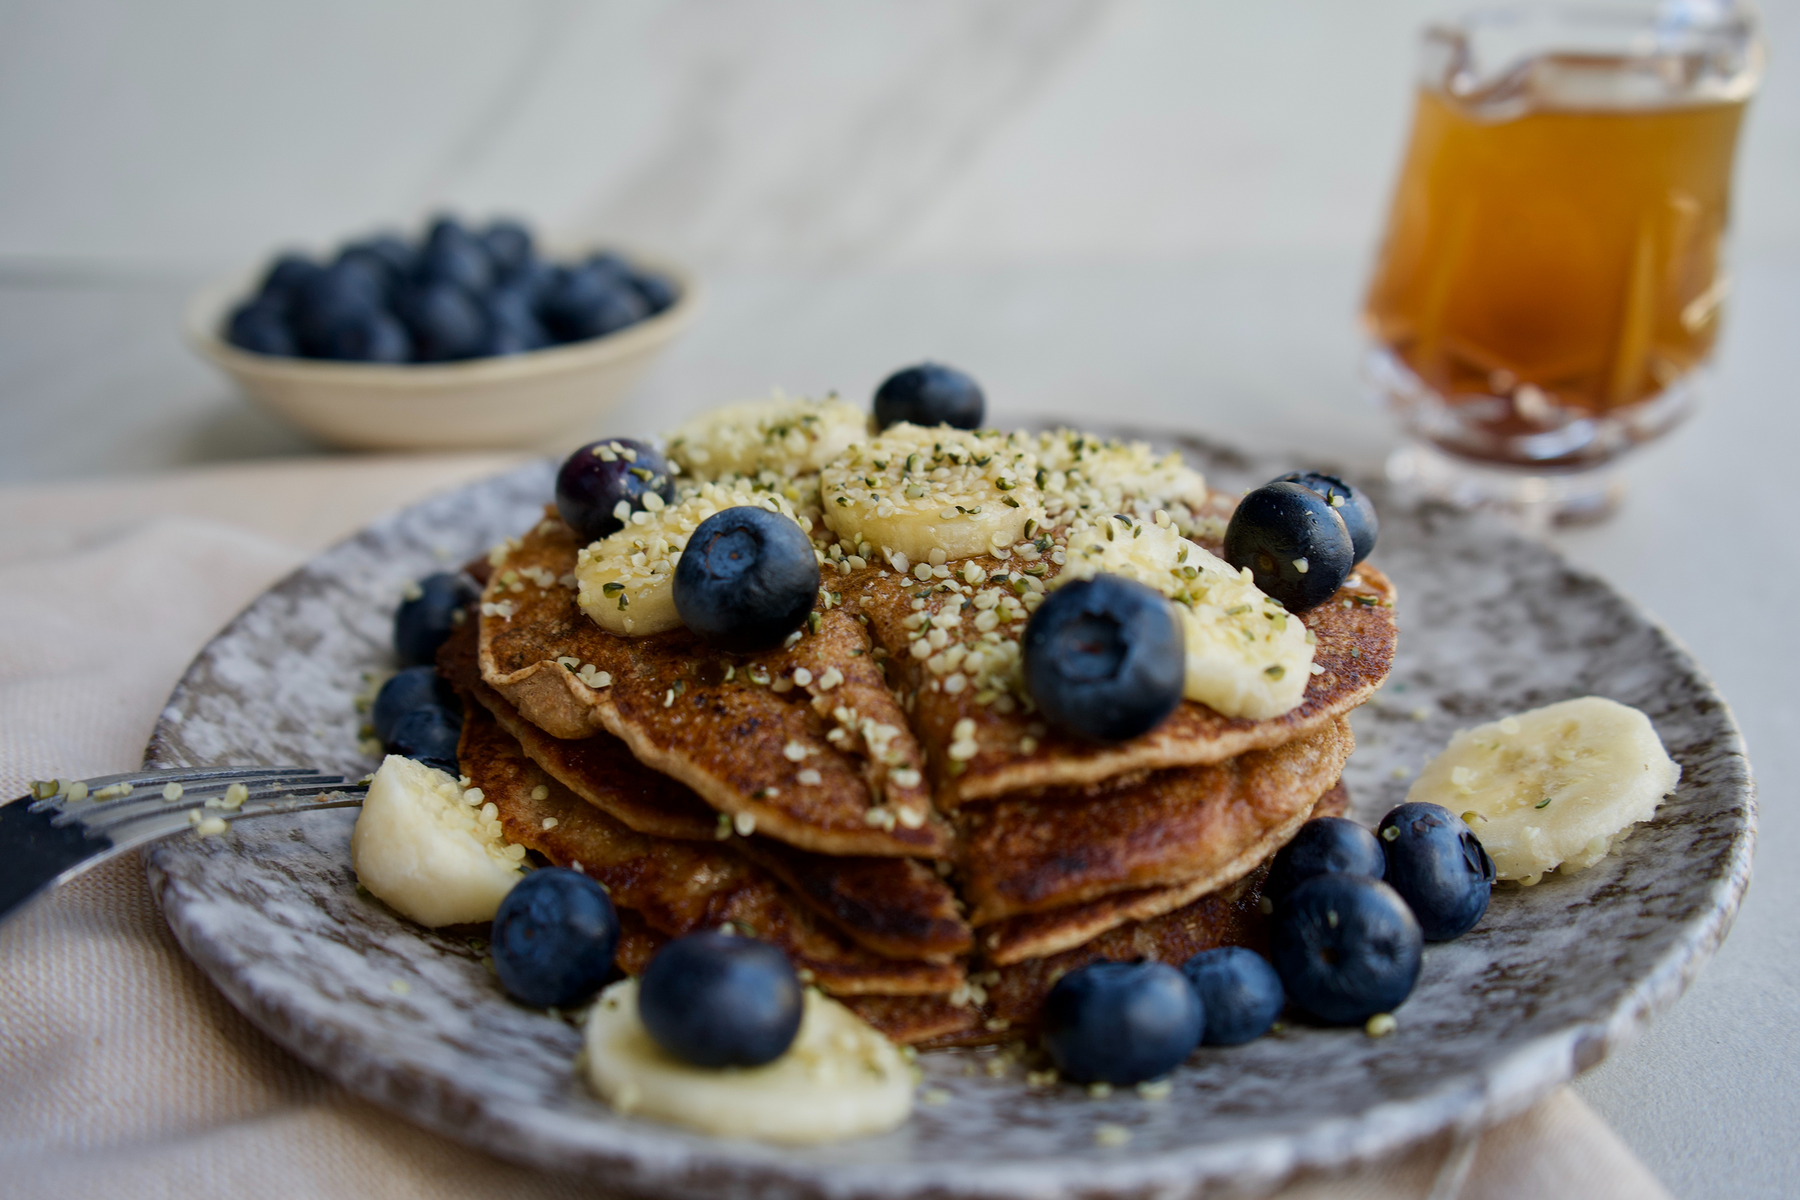 Plant based pancakes don't have to be plain!